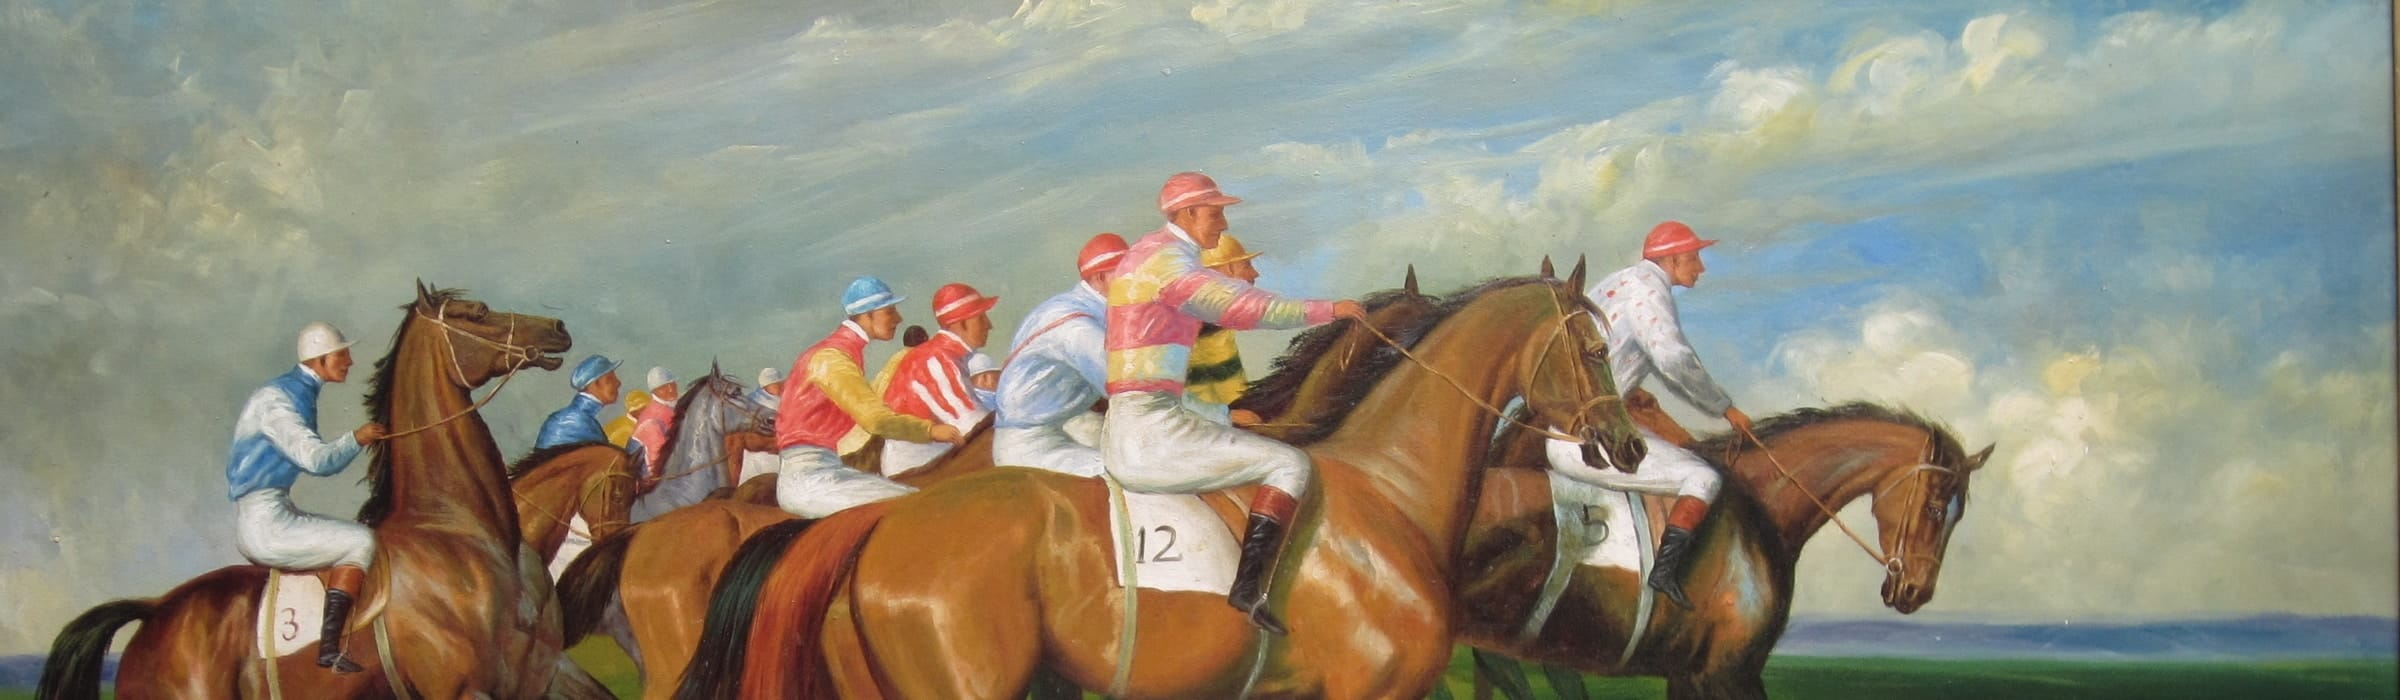 sporting auction racing